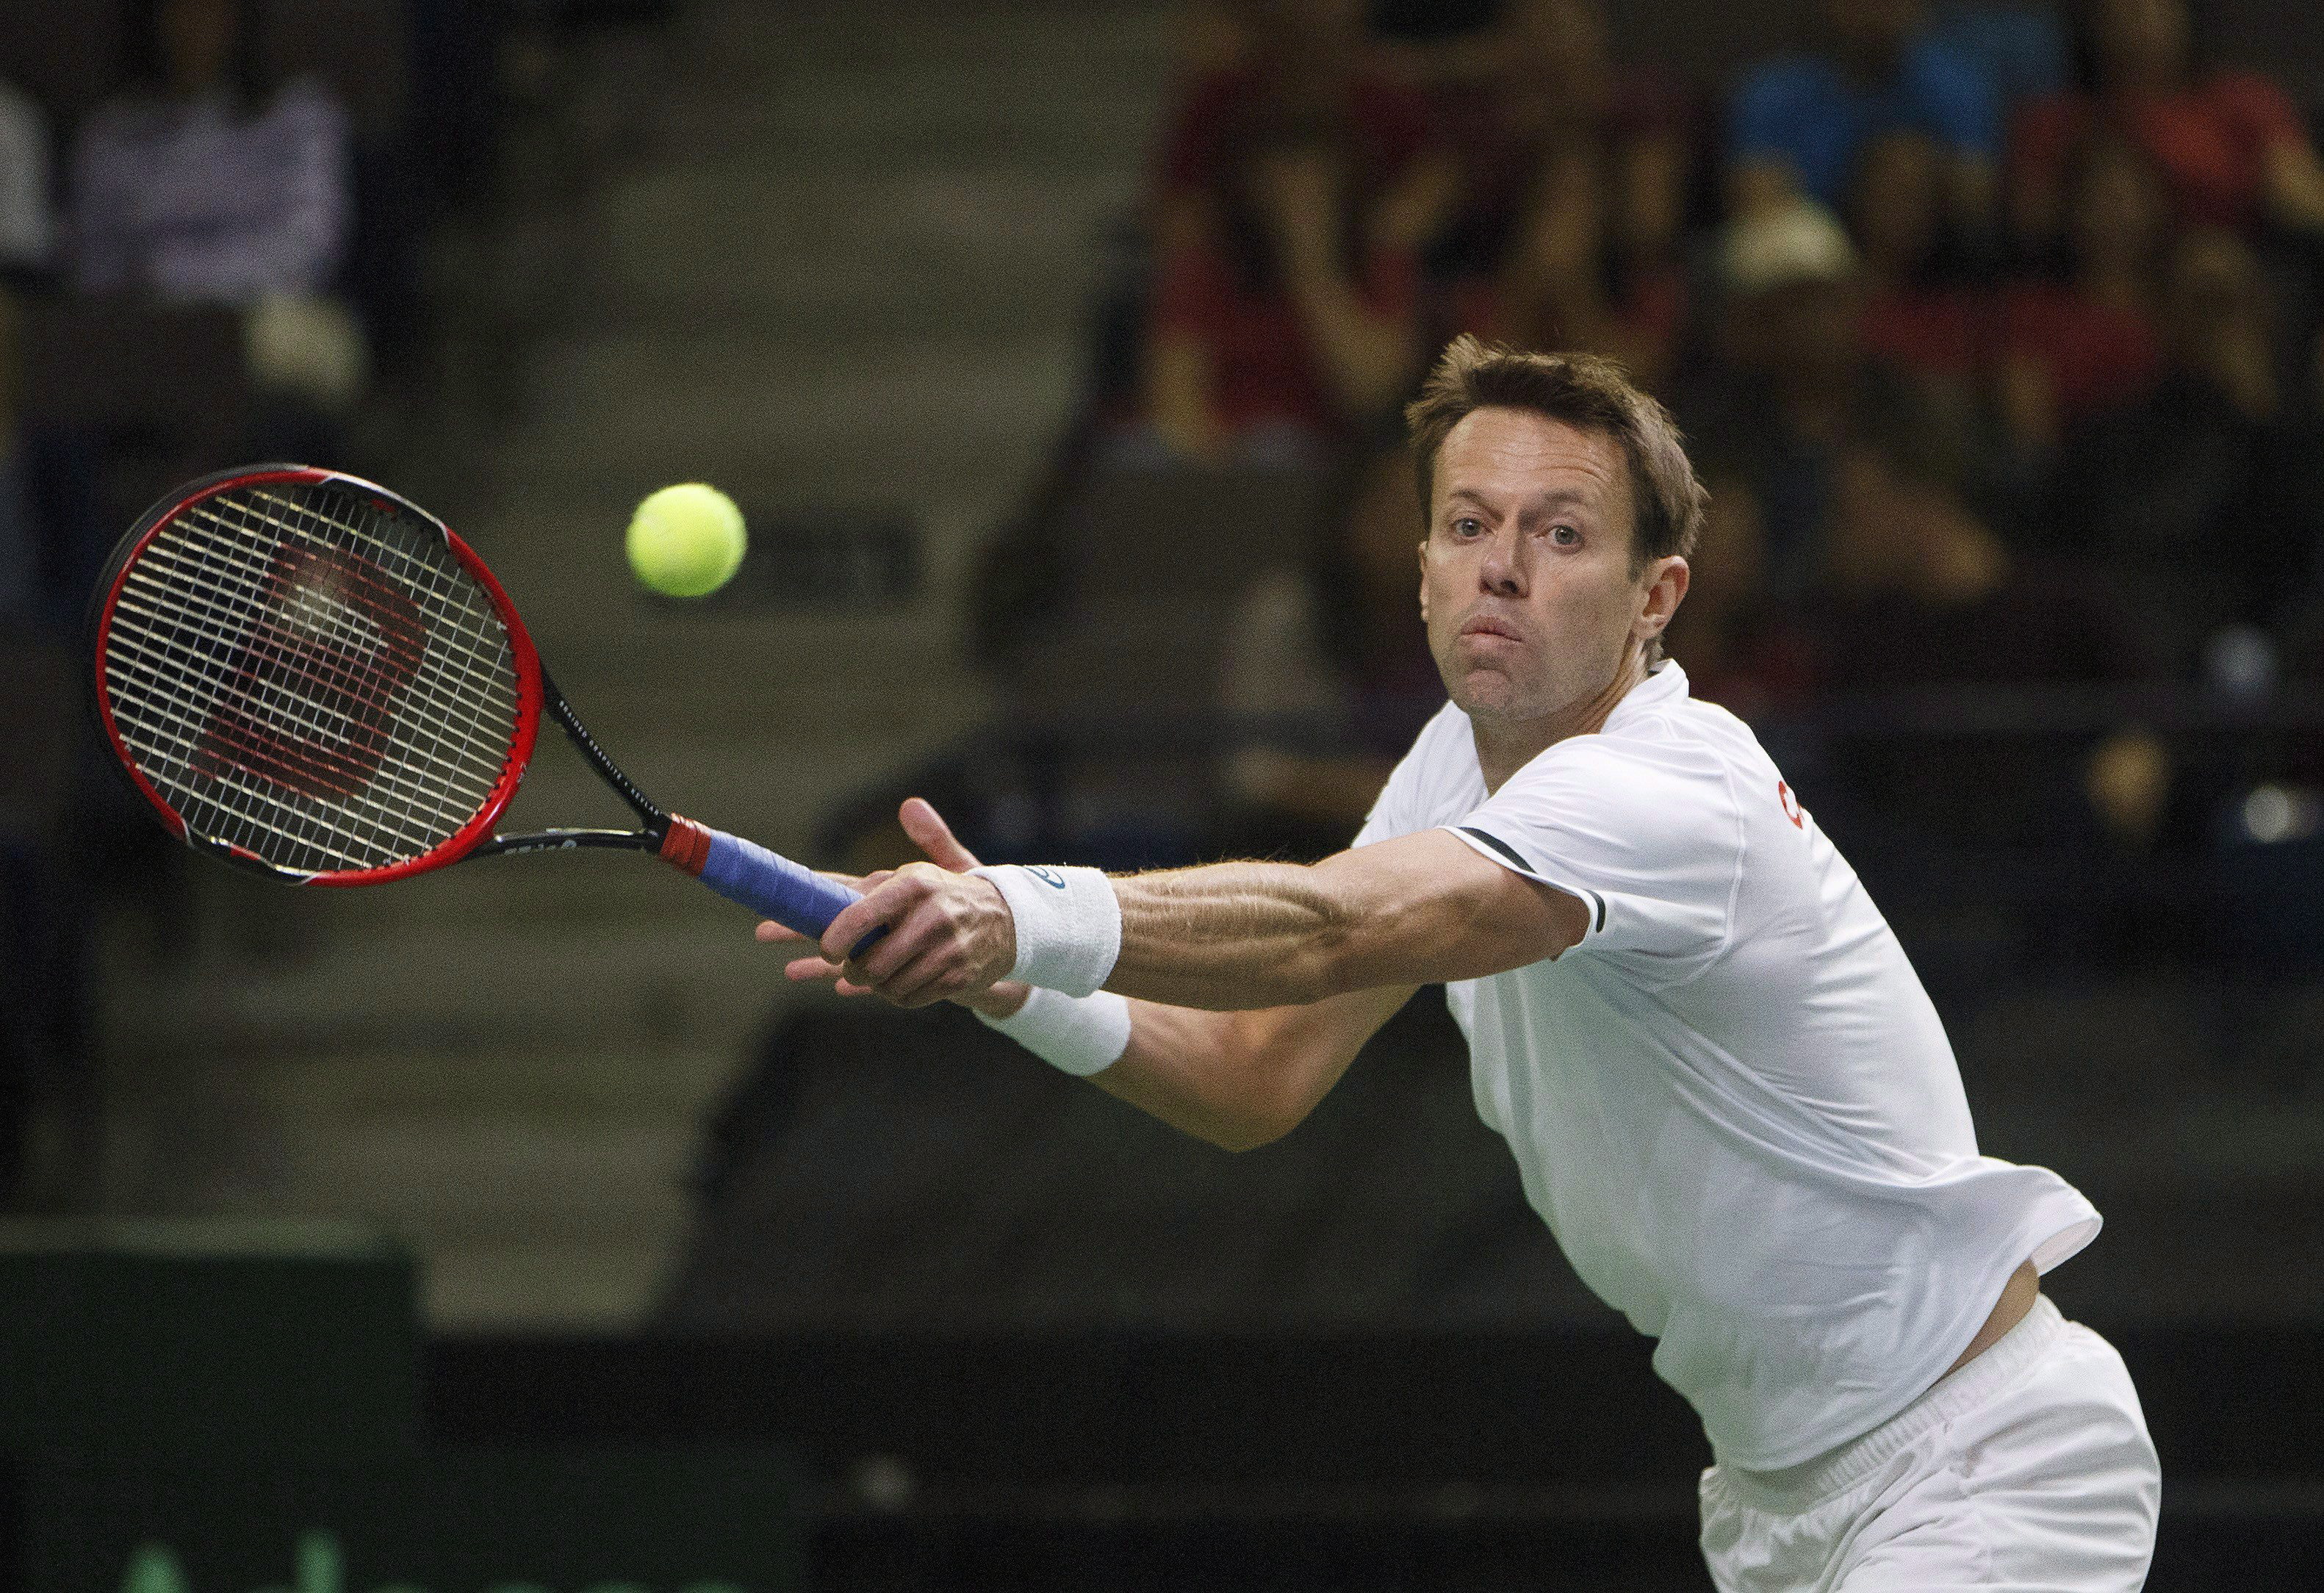 Daniel Nestor about to hit the ball